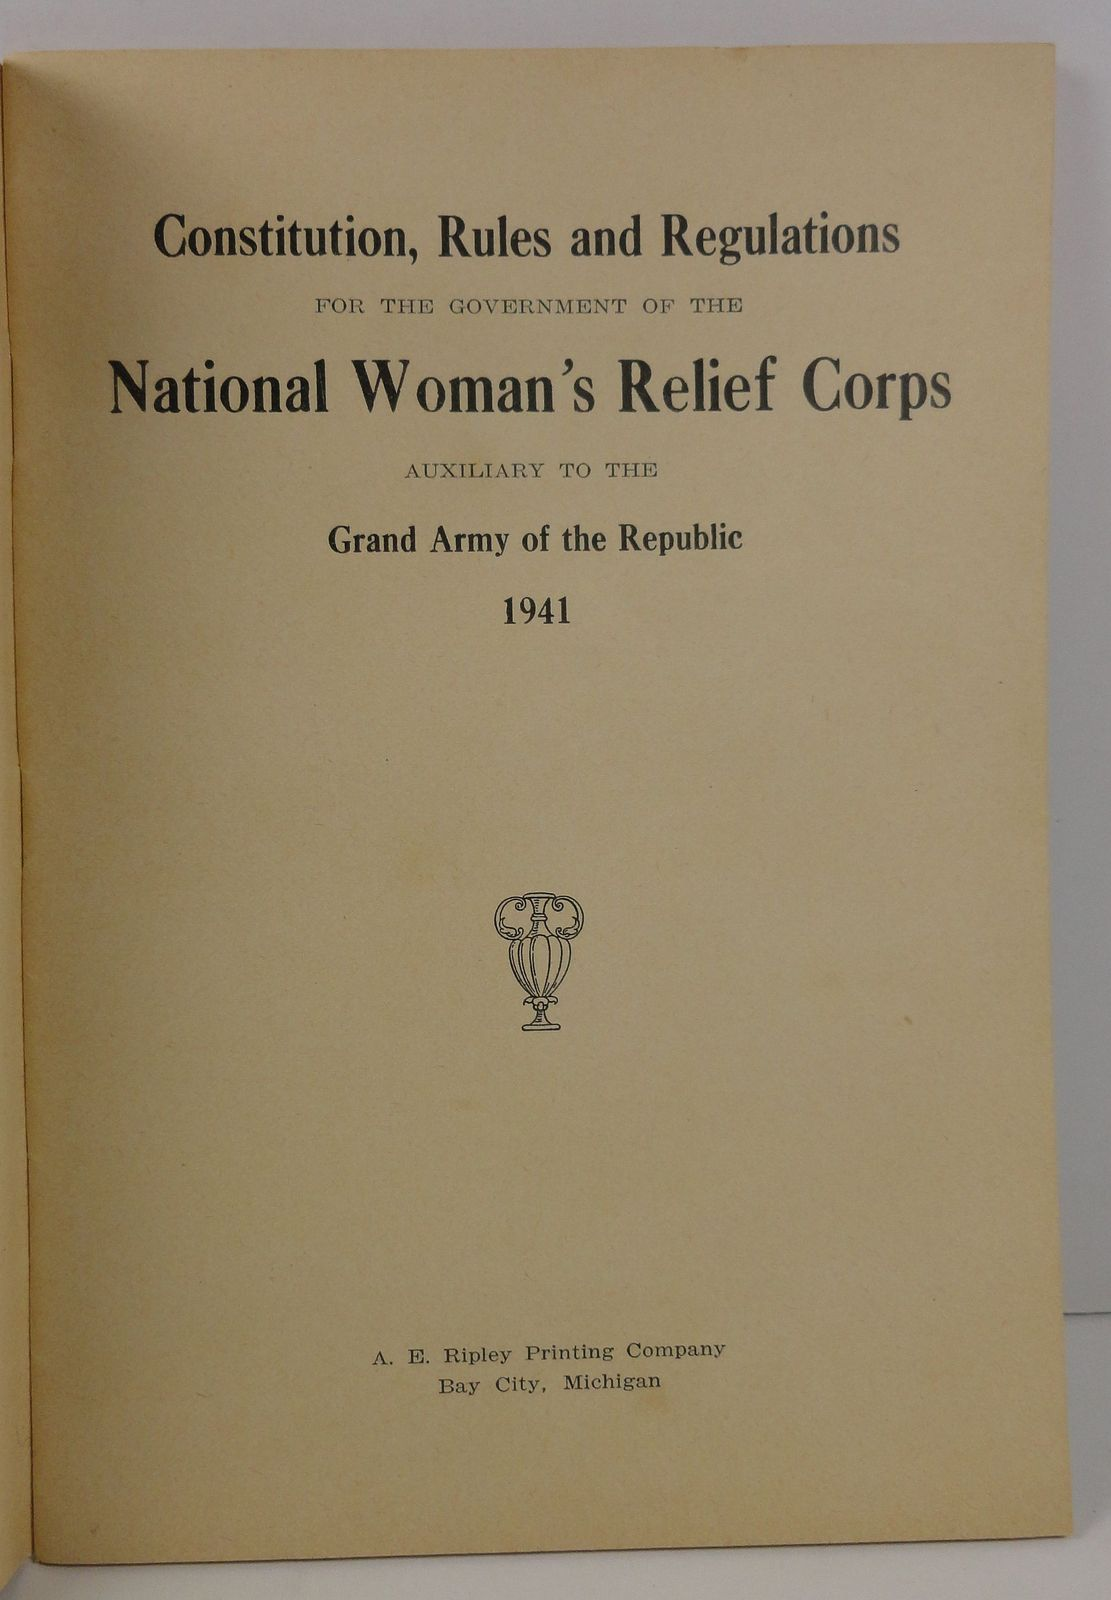 Constitution for the Government of National Woman's Relief Corps